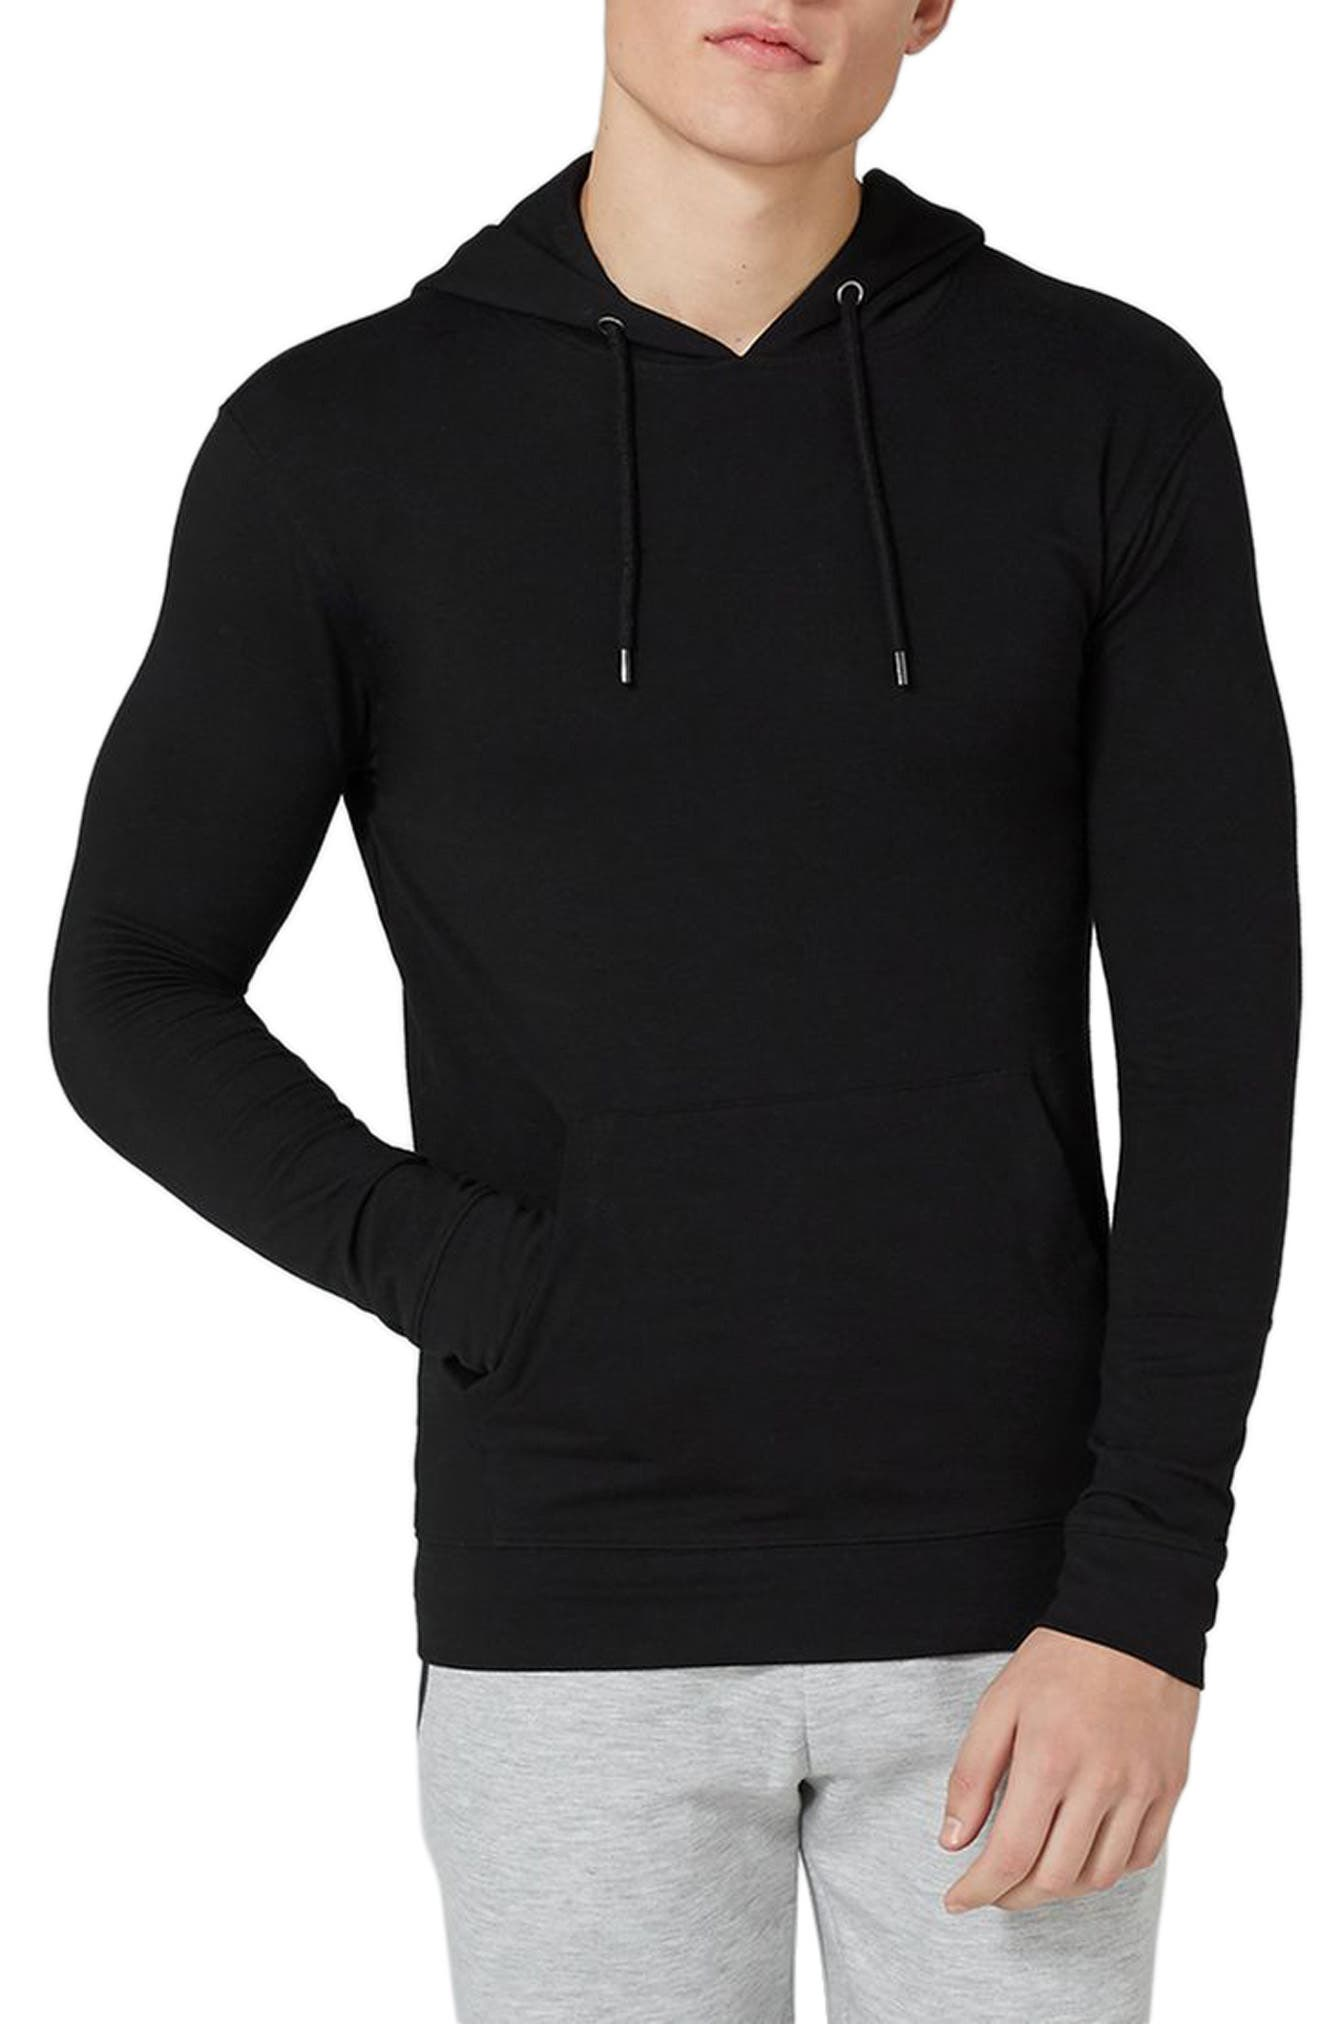 Ultra Muscle Fit Hoodie,                             Main thumbnail 1, color,                             001